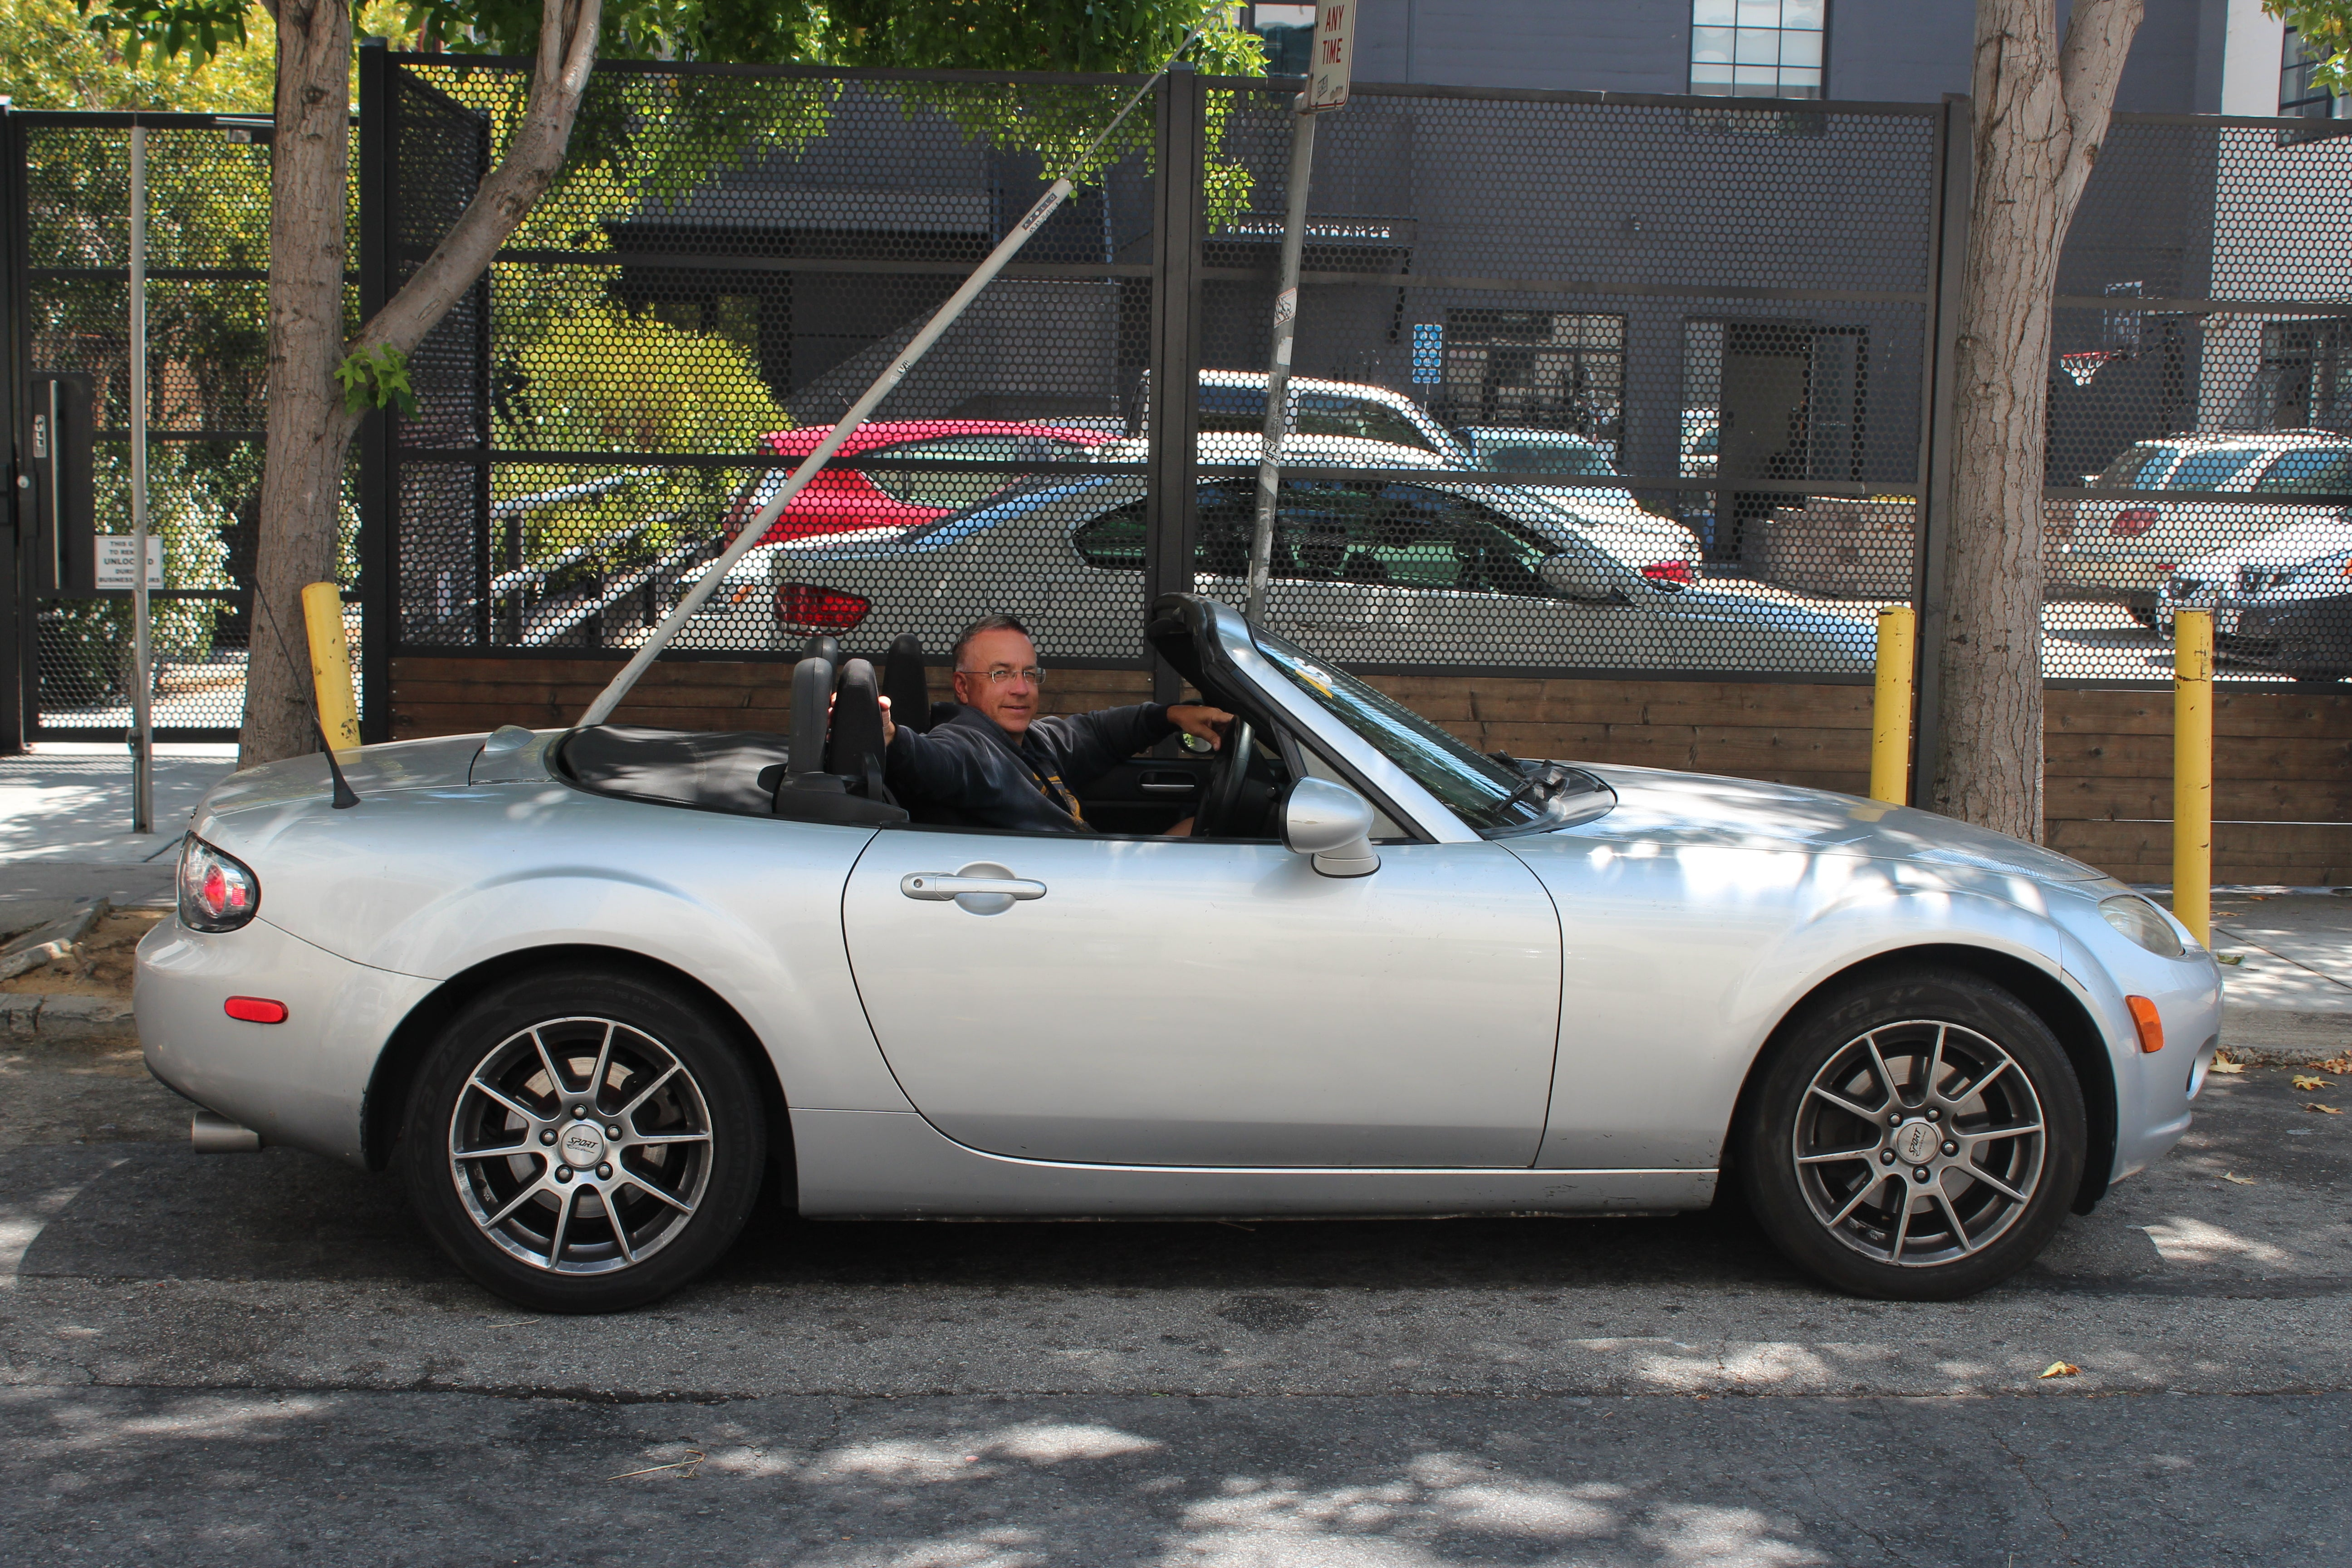 Fiat 124 spider together with Alfa Romeo Spider 2 0 JTS furthermore Fiat 124 Spider 2016 Review Uk Pictures in addition 2017 Fiat 124 Spider Abarth Us in addition 2018 Fiat 124 Spider Abarth. on fiat spider 2017